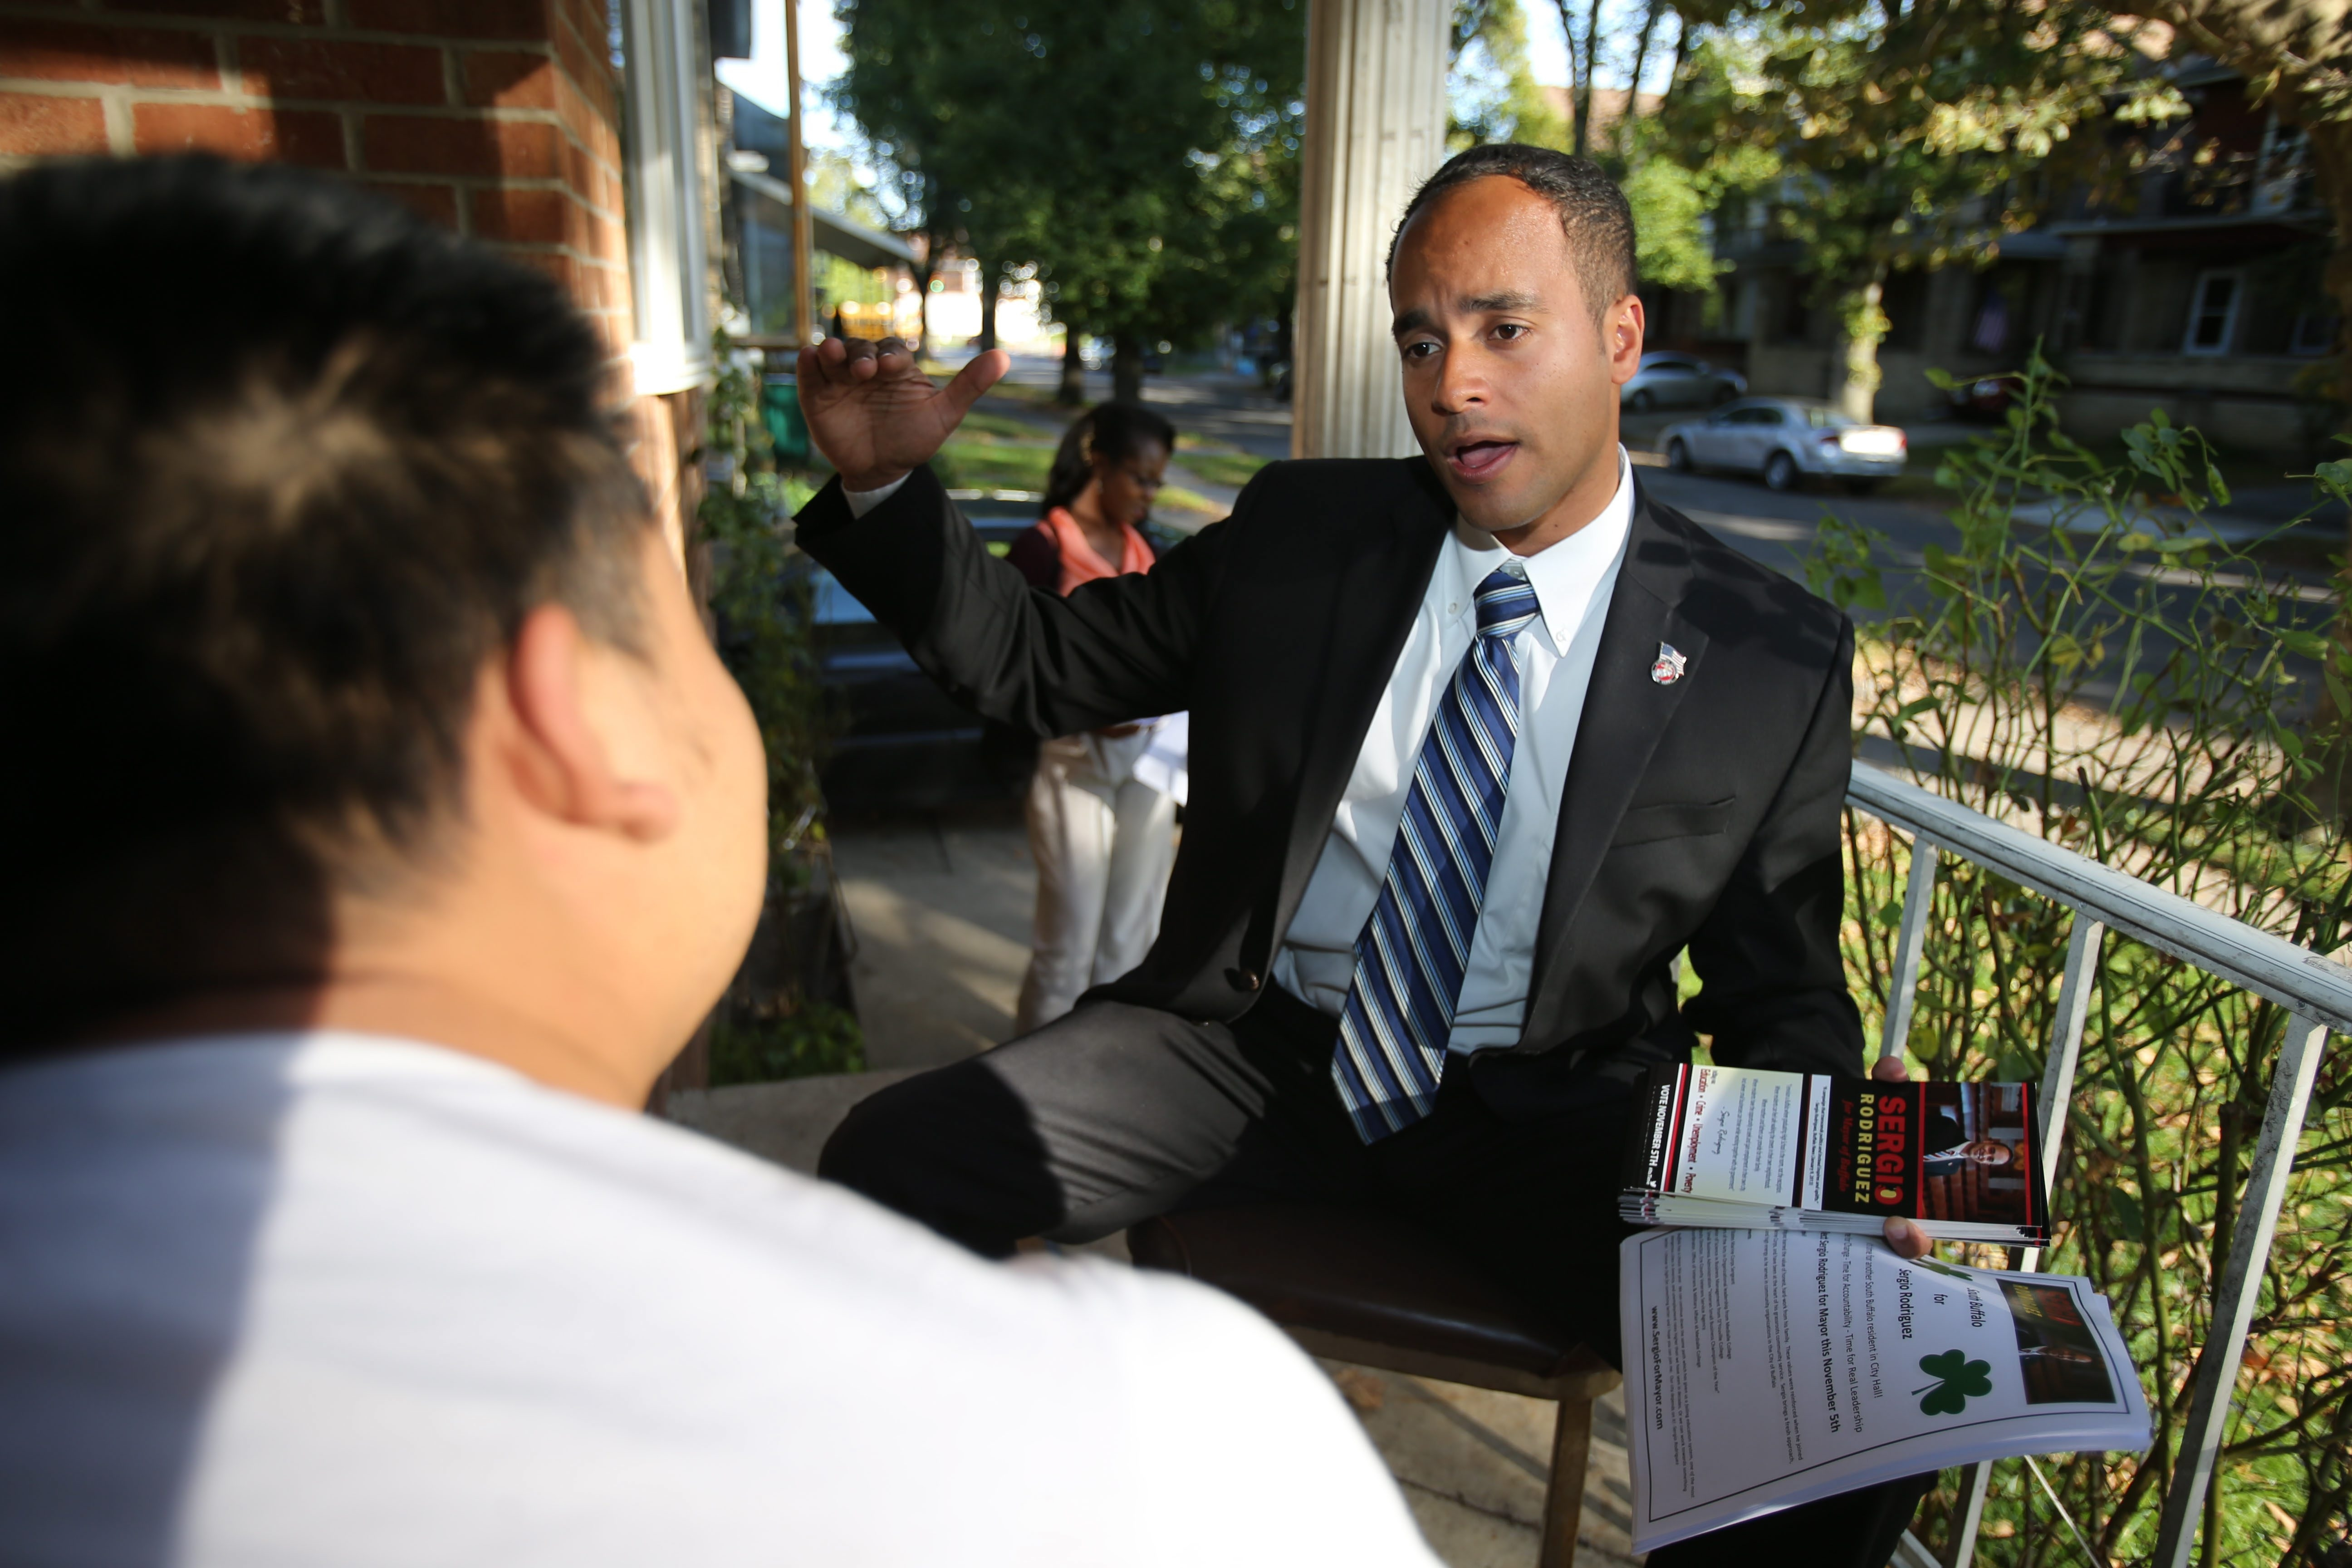 Republican mayoral candidate Sergio R. Rodriguez has taken his campaign to the city's streets, going door-to-door to spread the word about his platform, which includes a push for mayoral control of schools and increasing police foot patrols.